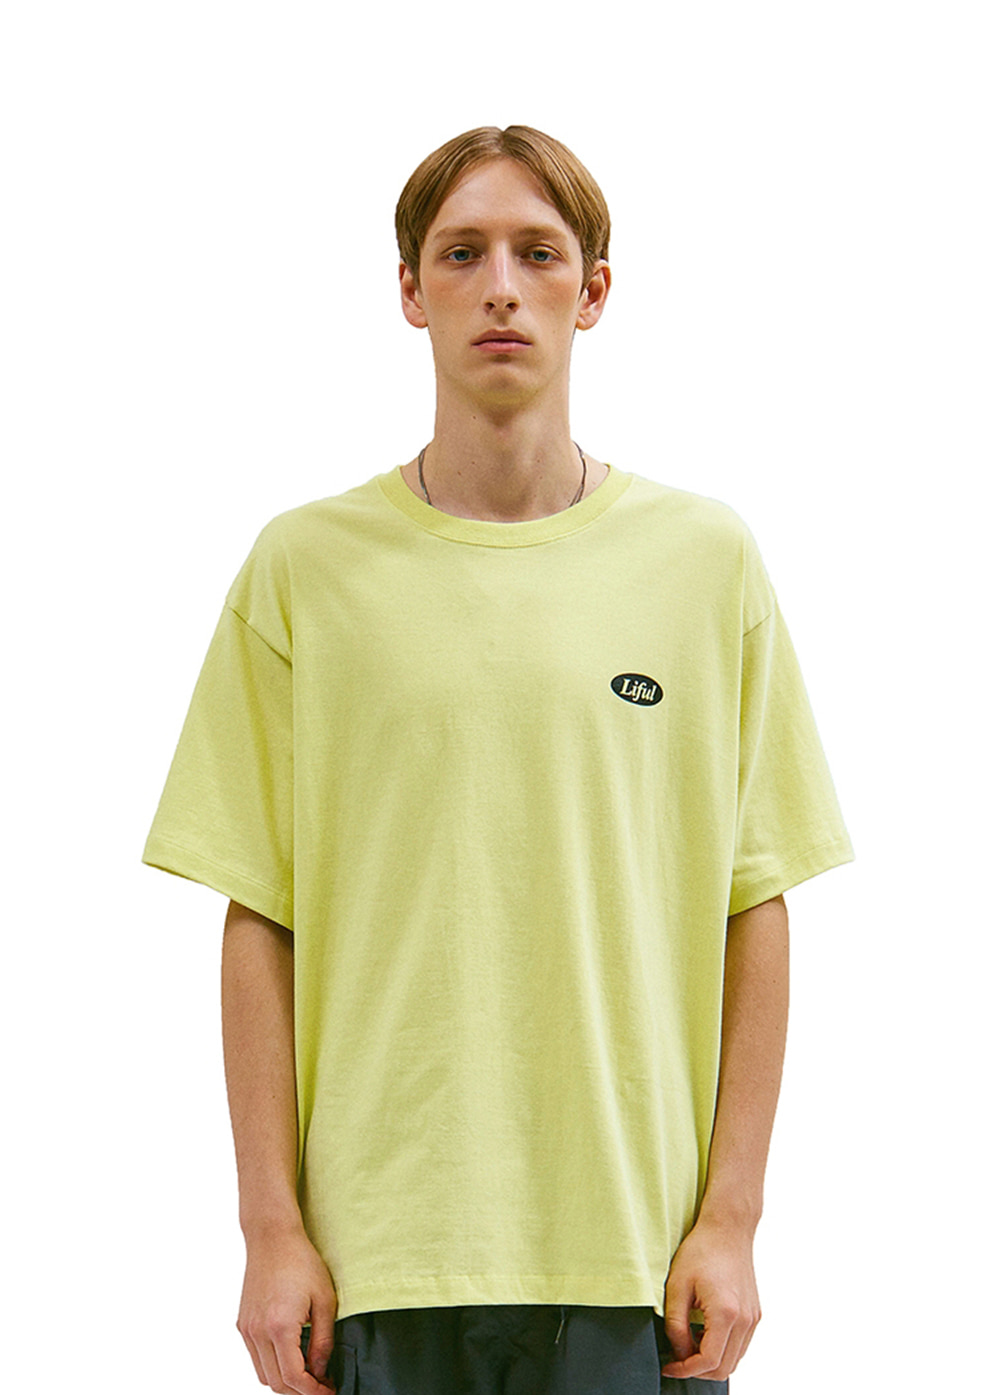 SLOGAN LOGO TEE yellow lime